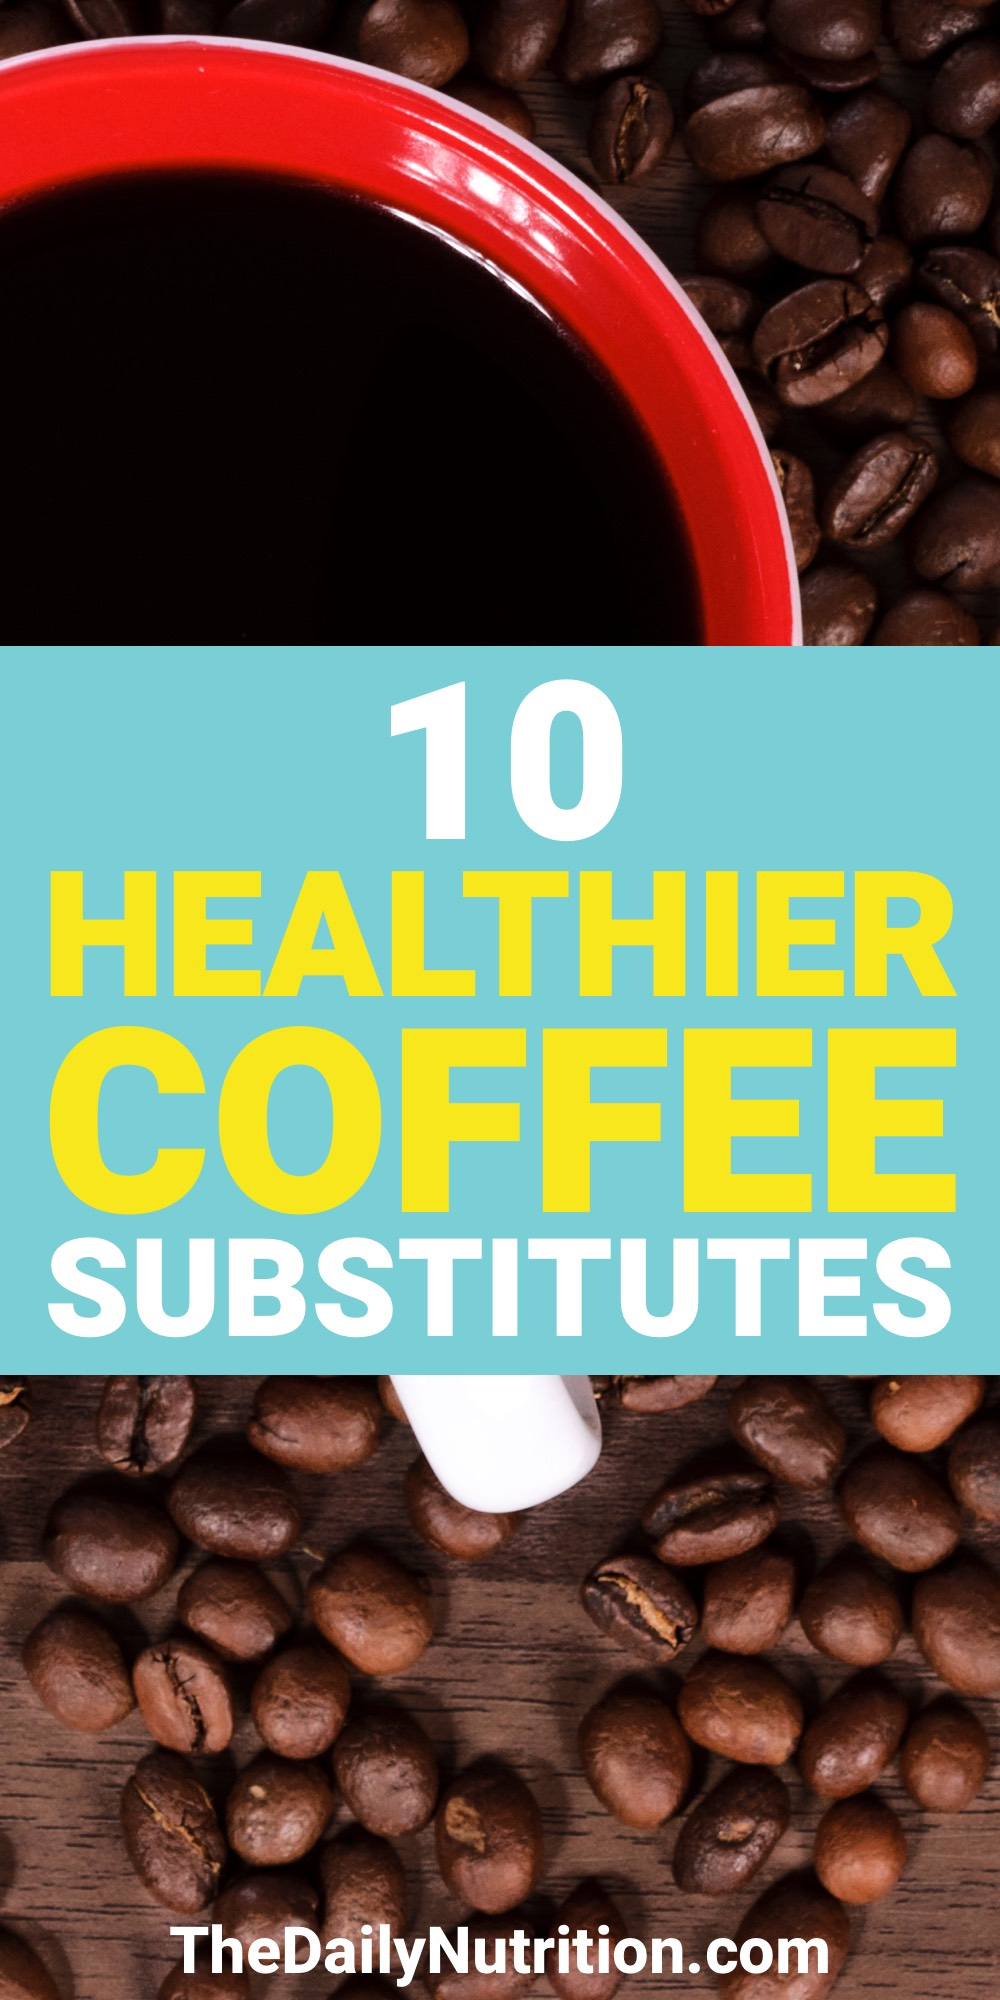 What can you drink instead of coffee when you need to wake up? Here are 10 coffee substitutes that you can use.